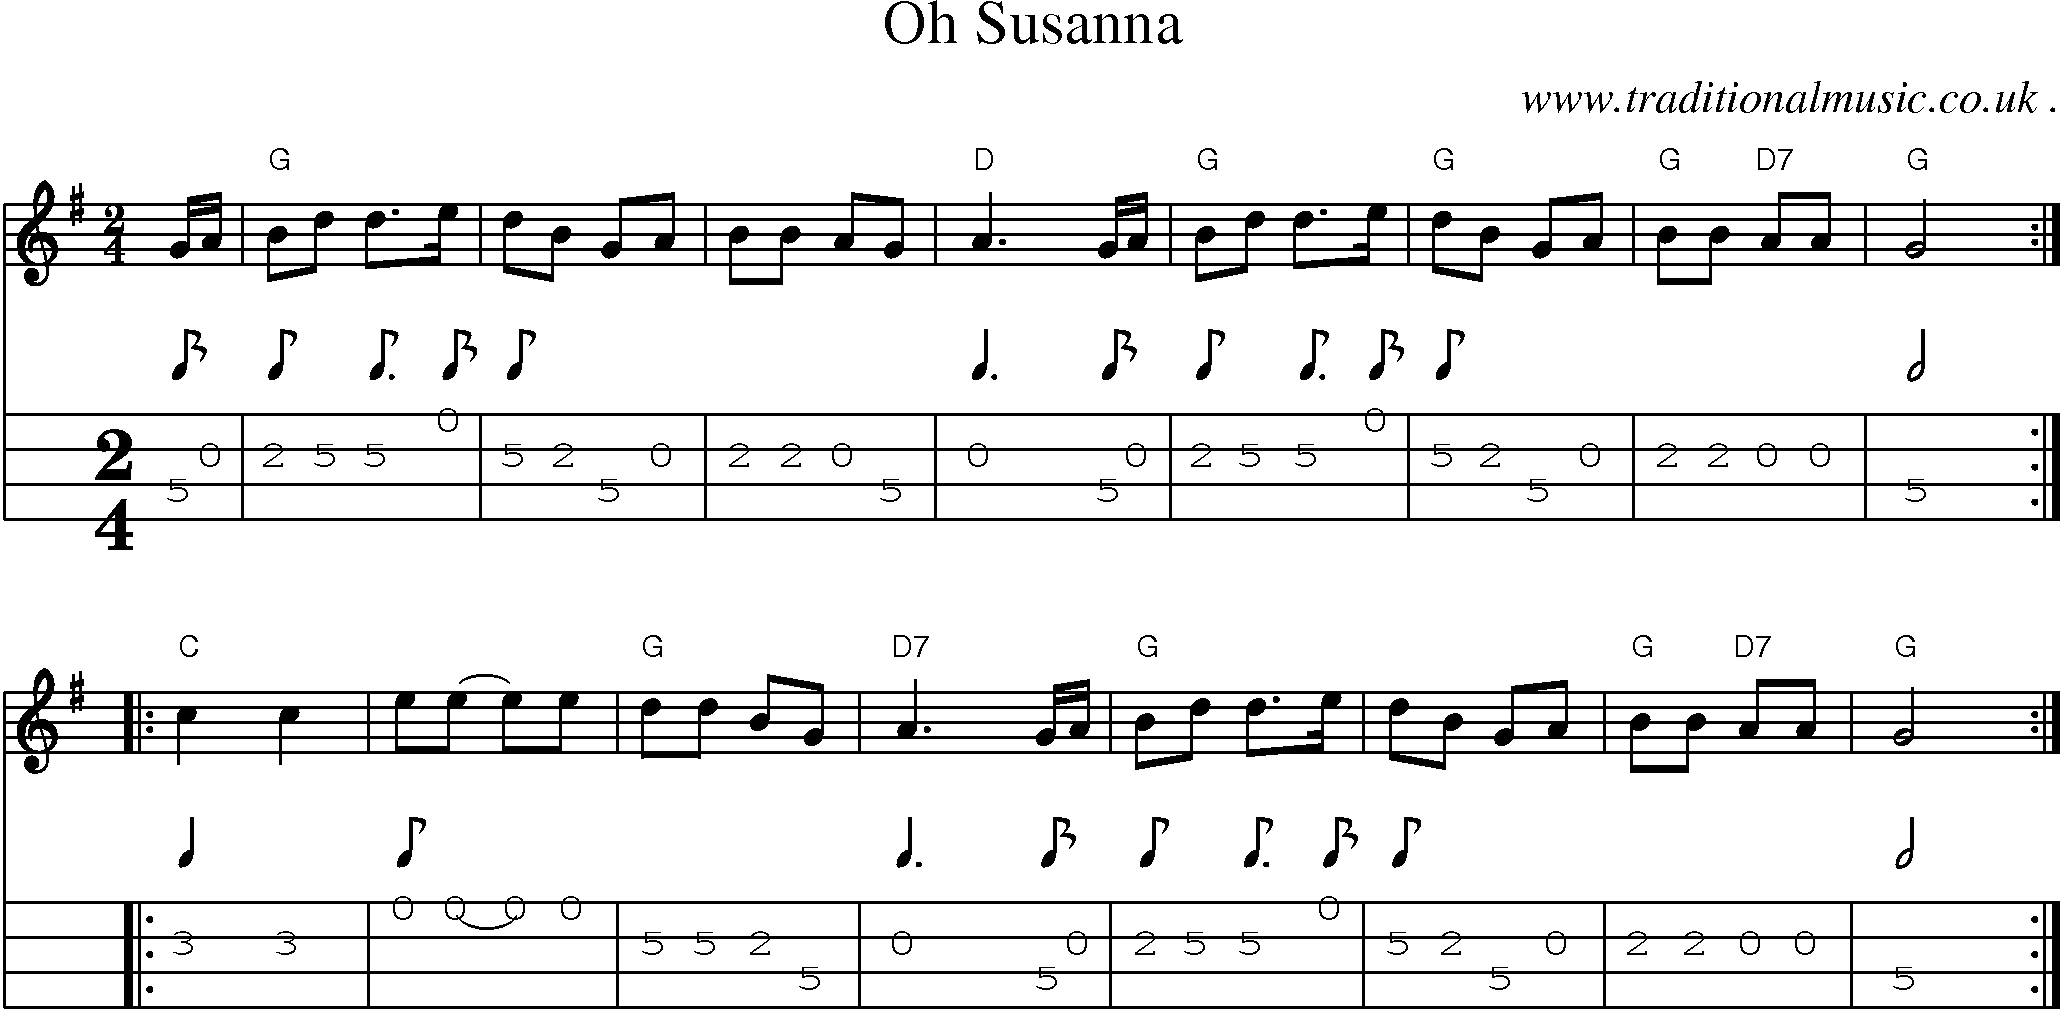 American Old-time music, Scores and Tabs for Mandolin - Oh Susanna